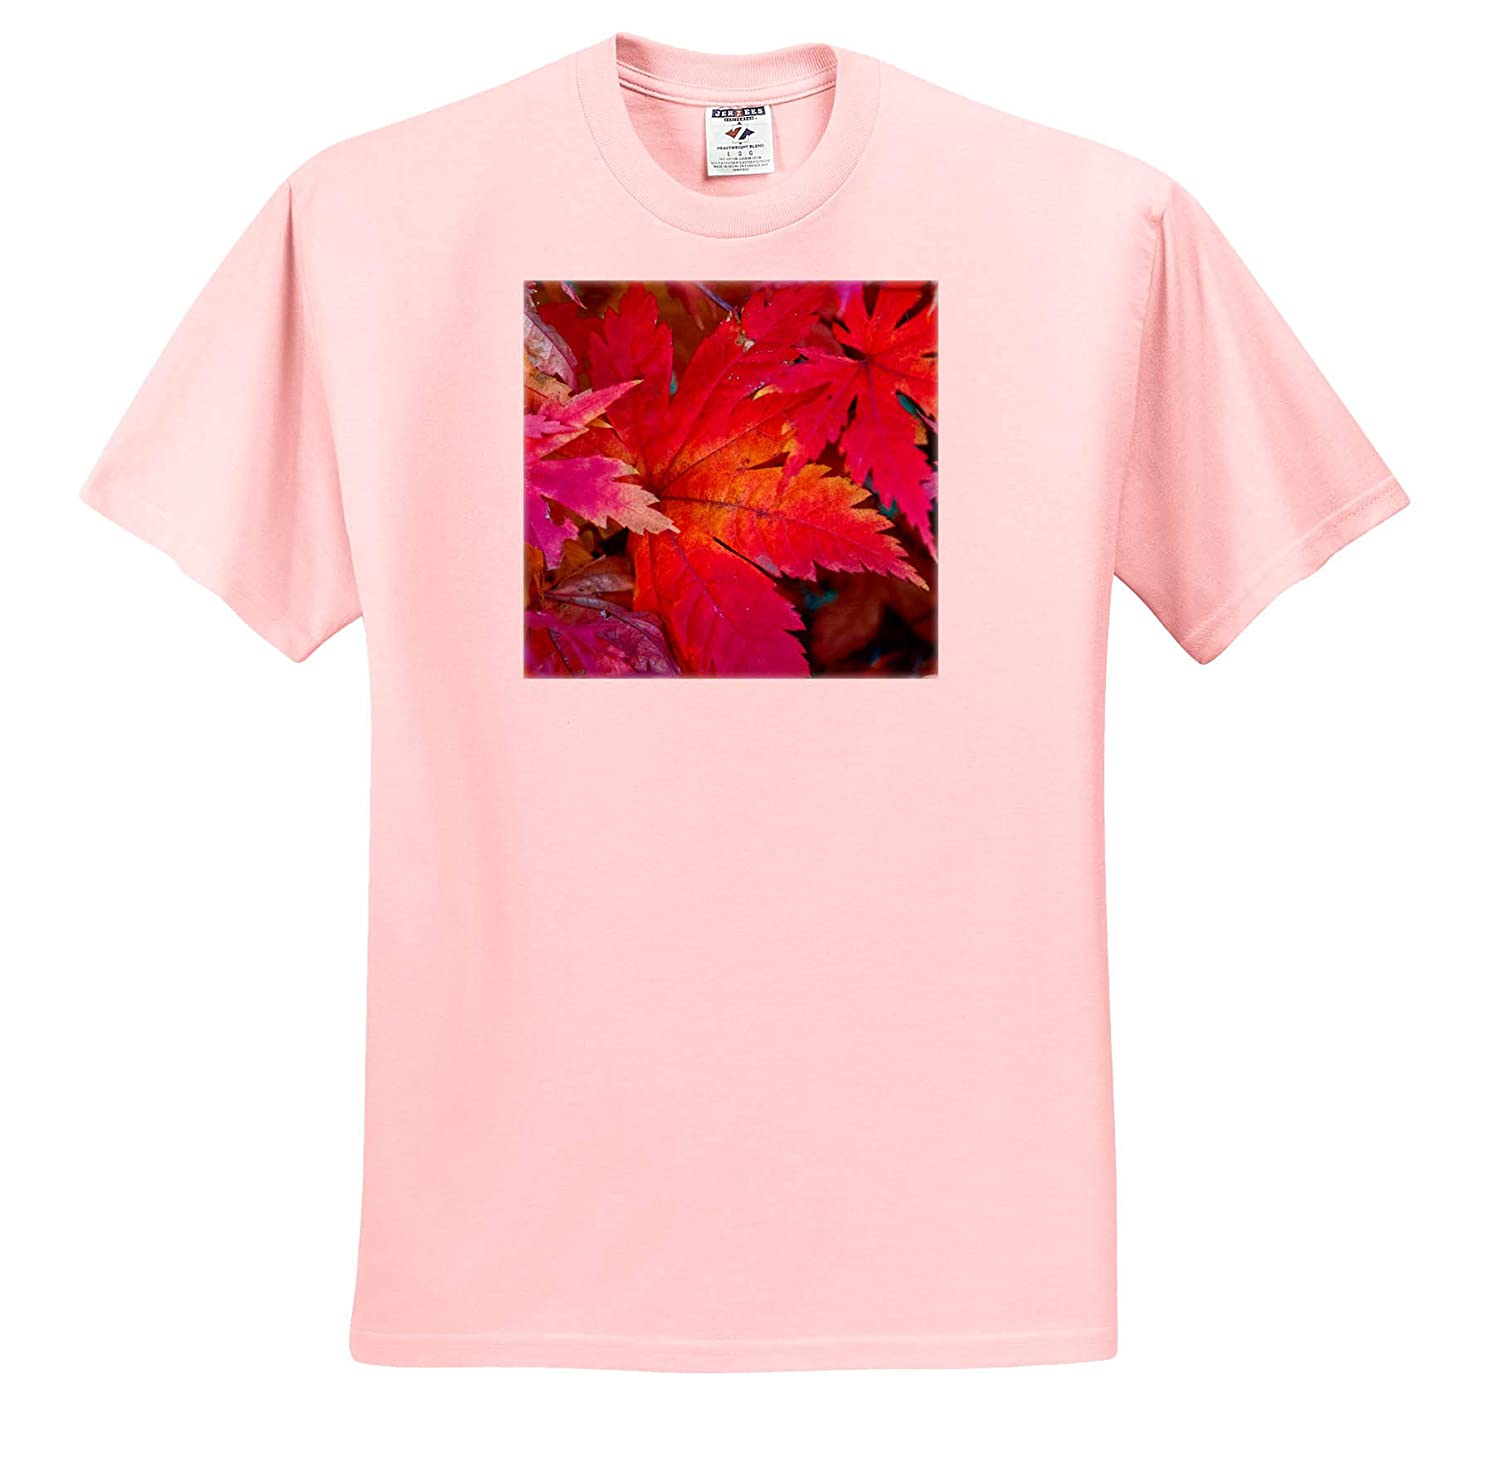 Colors of Autumn T-Shirts Closeup View 3dRose Alexis Photography Seasons Autumn Leaves Red Japanese Maple Tree Leaves